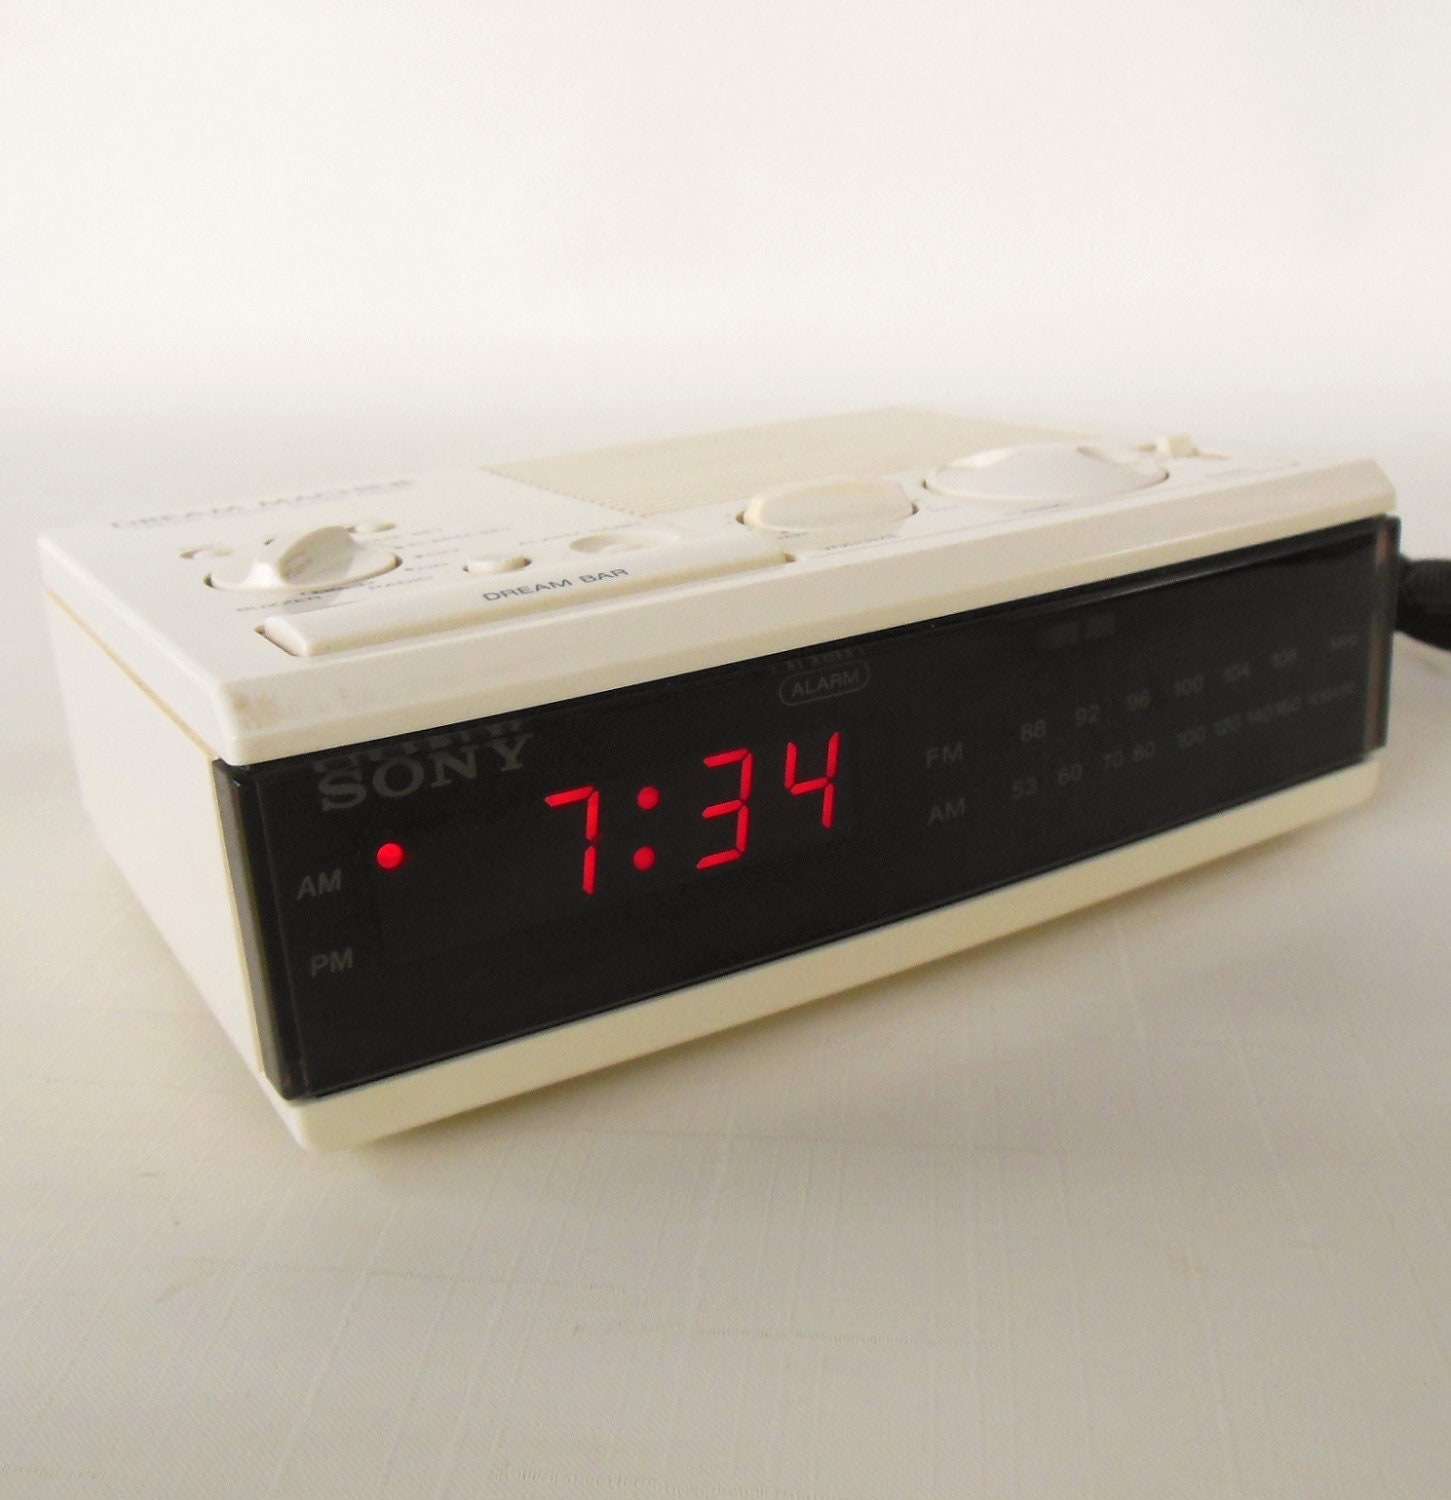 sony dream machine alarm clock radio icf c3w by lauraslastditch. Black Bedroom Furniture Sets. Home Design Ideas